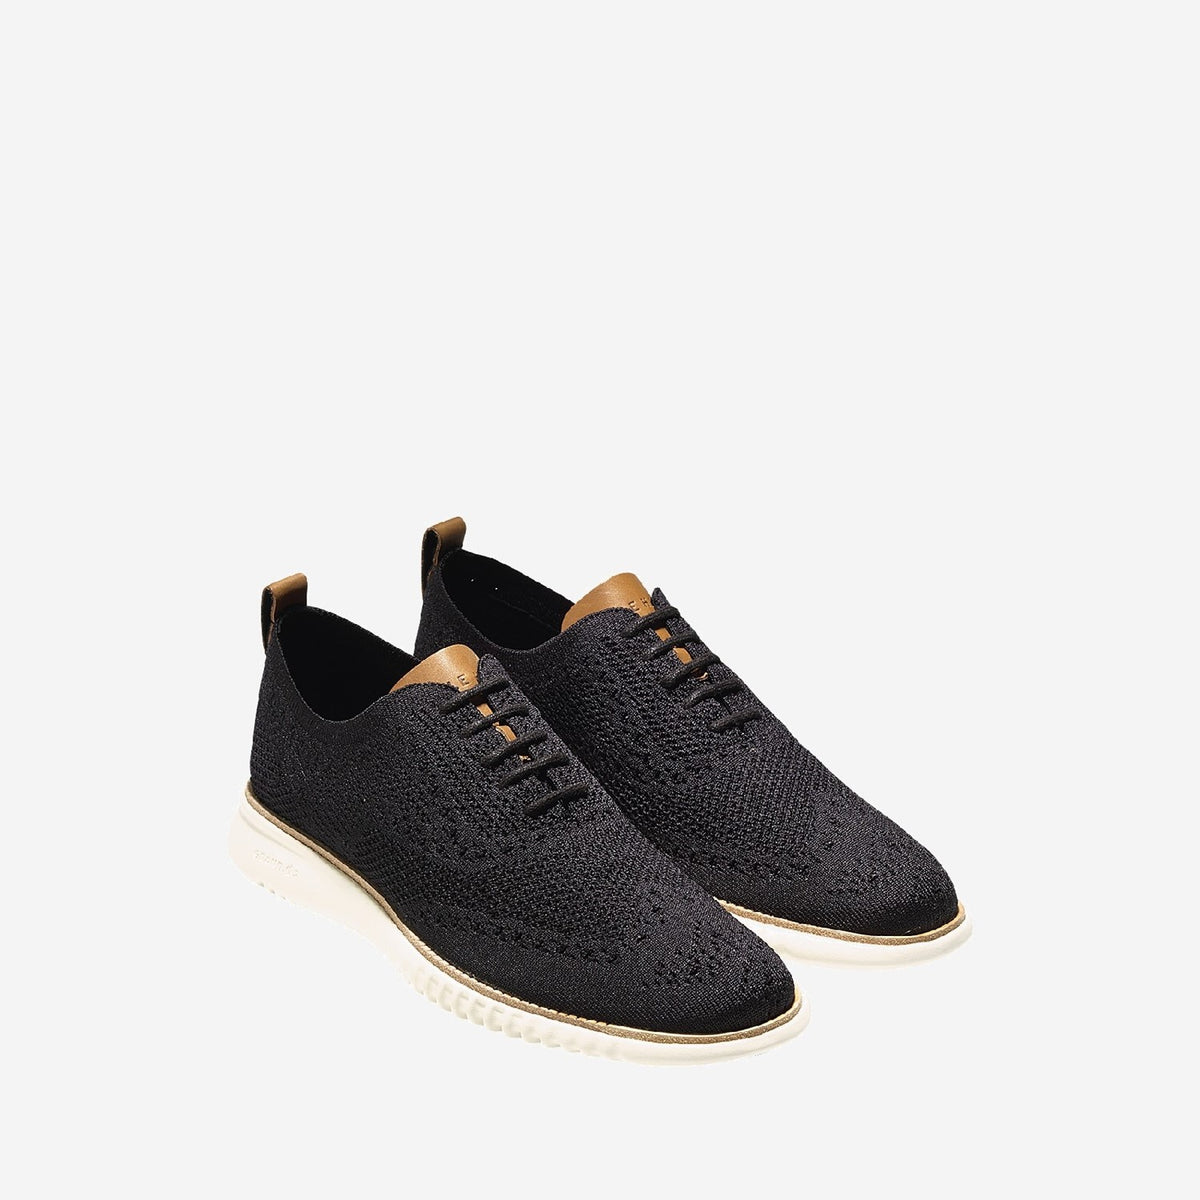 Men's 2.ZERØGRAND Stitchlite Oxford Black/Ivory